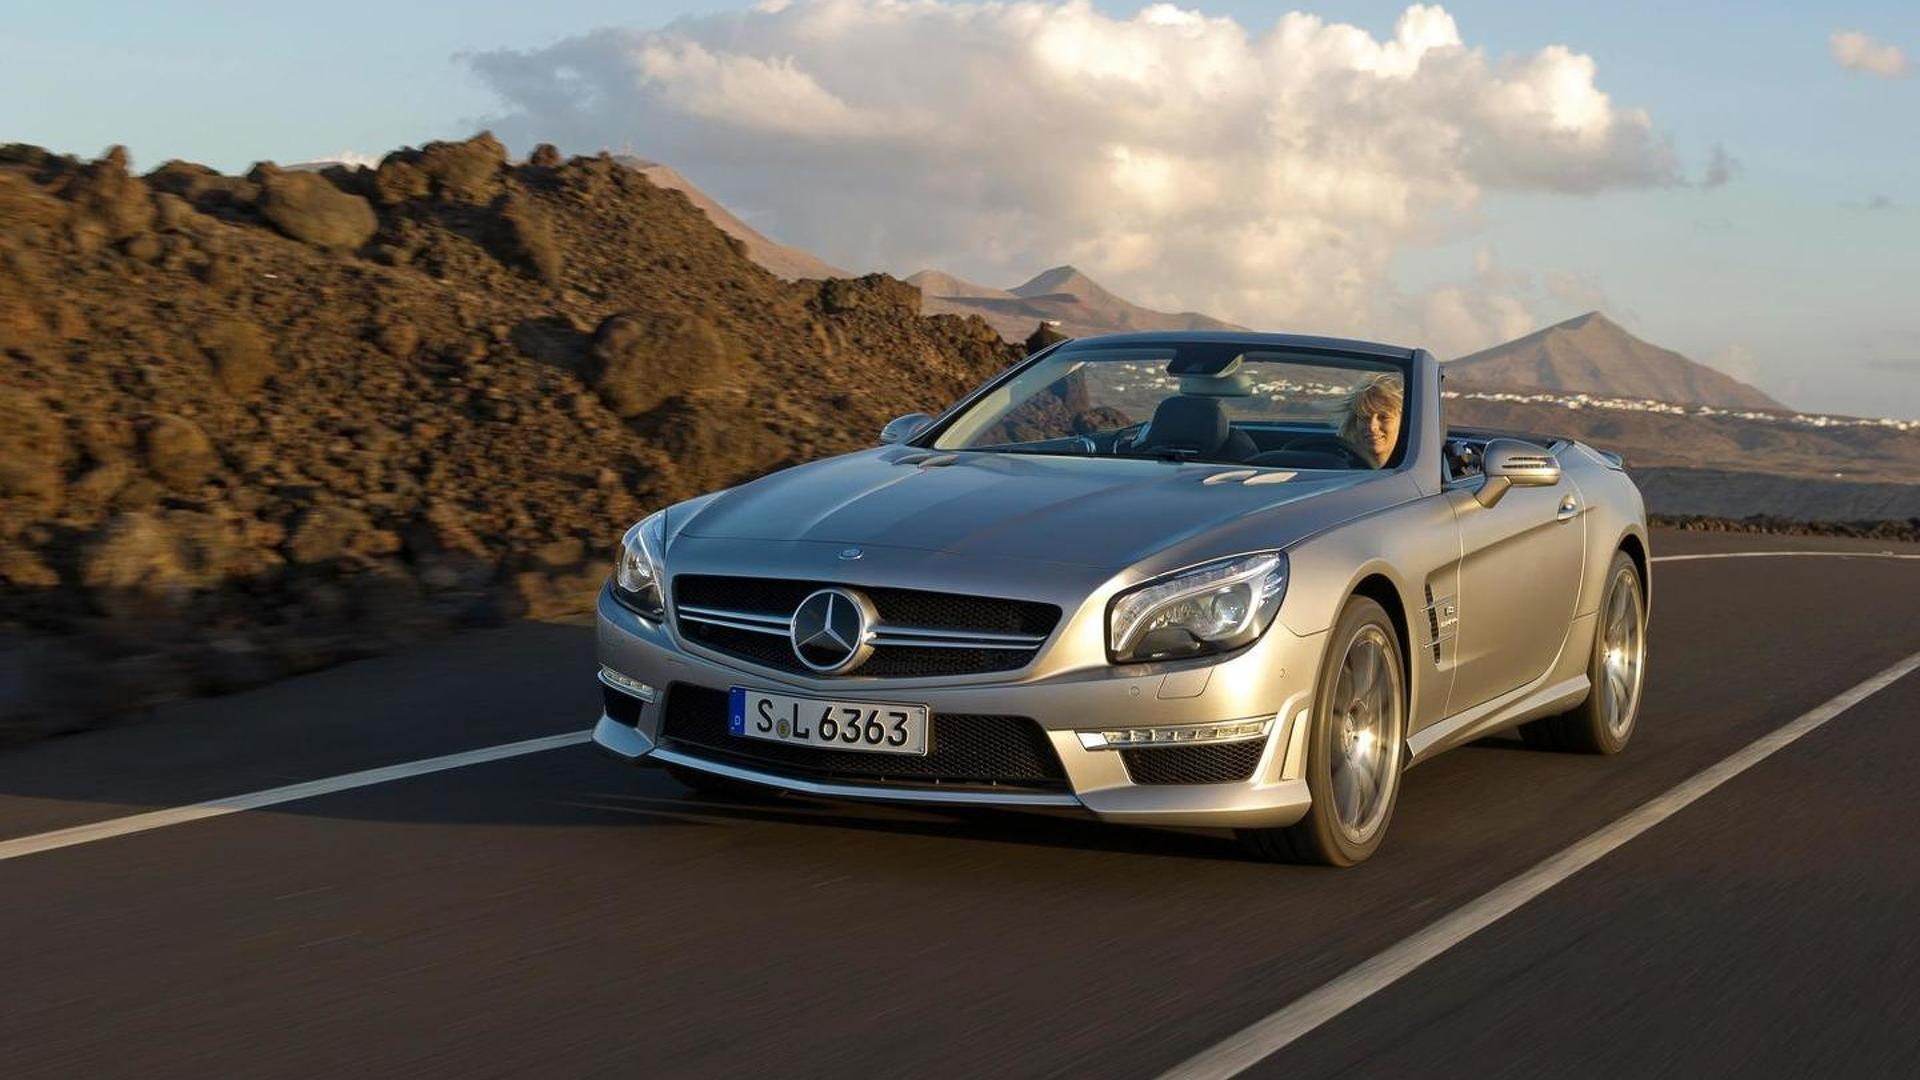 Mercedes-Benz to replace SL 350 with SL 400; SL 63 AMG getting 585 HP